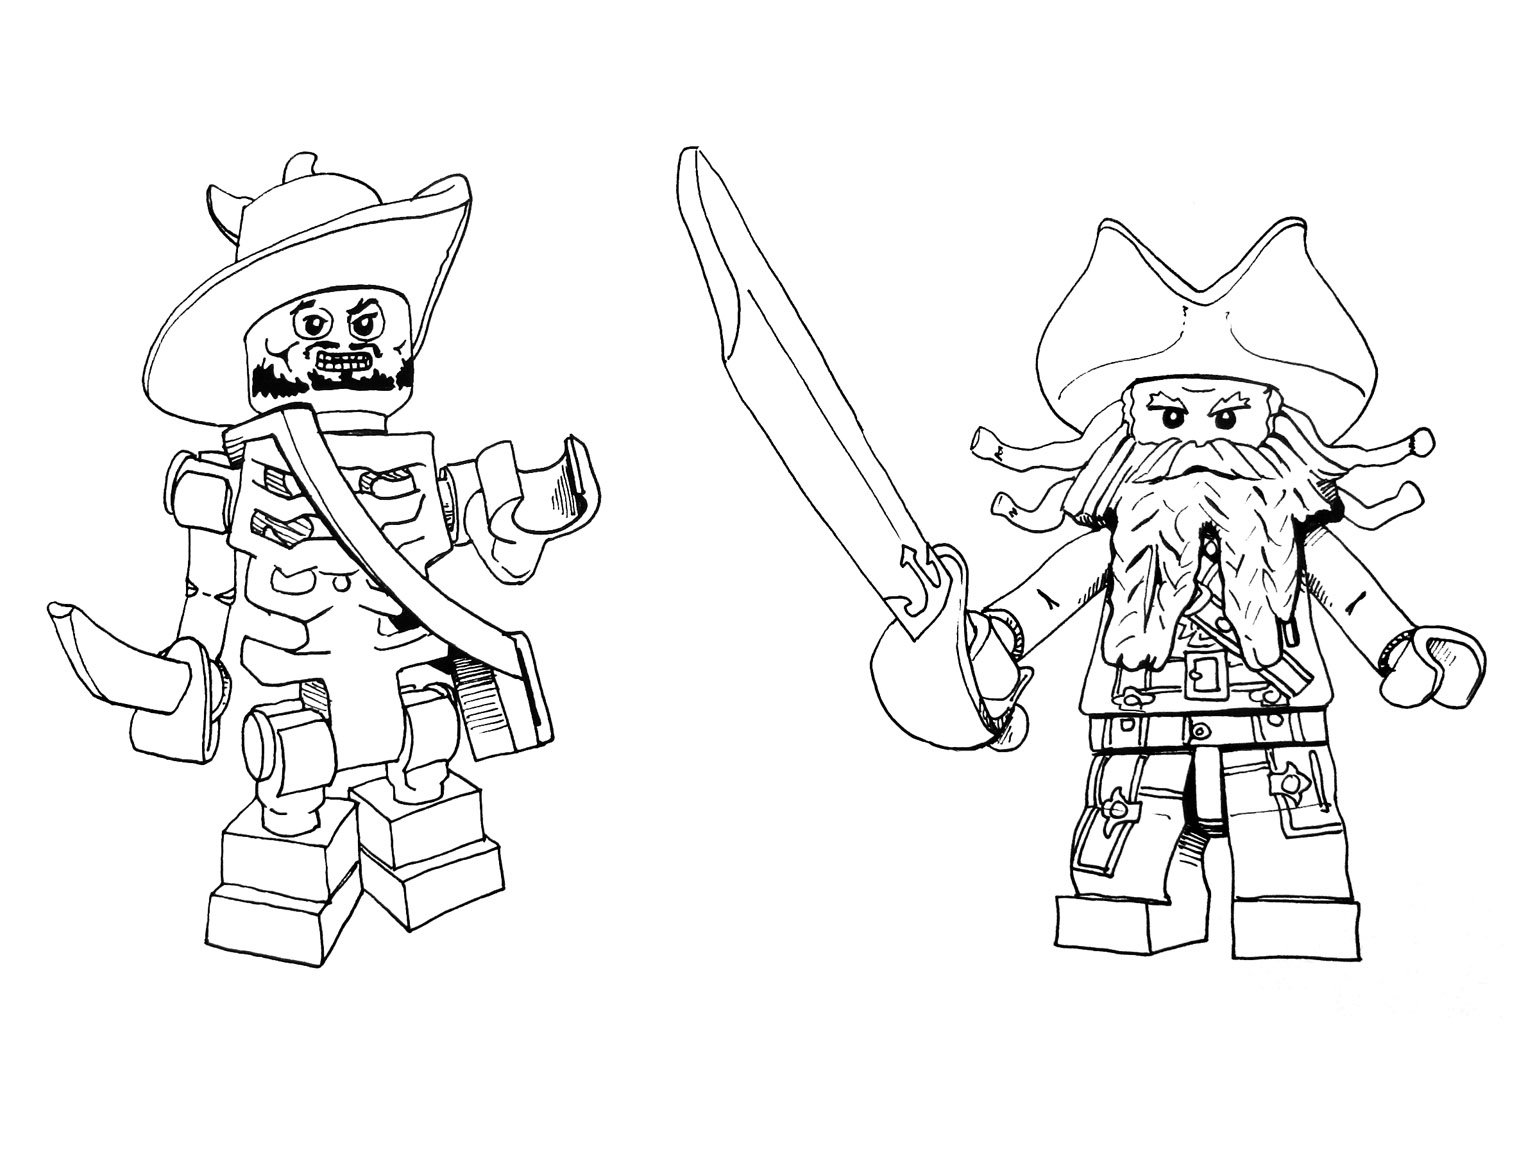 pirate lego coloring pages lego pirates coloring pages free printable lego pirates coloring lego pirate pages